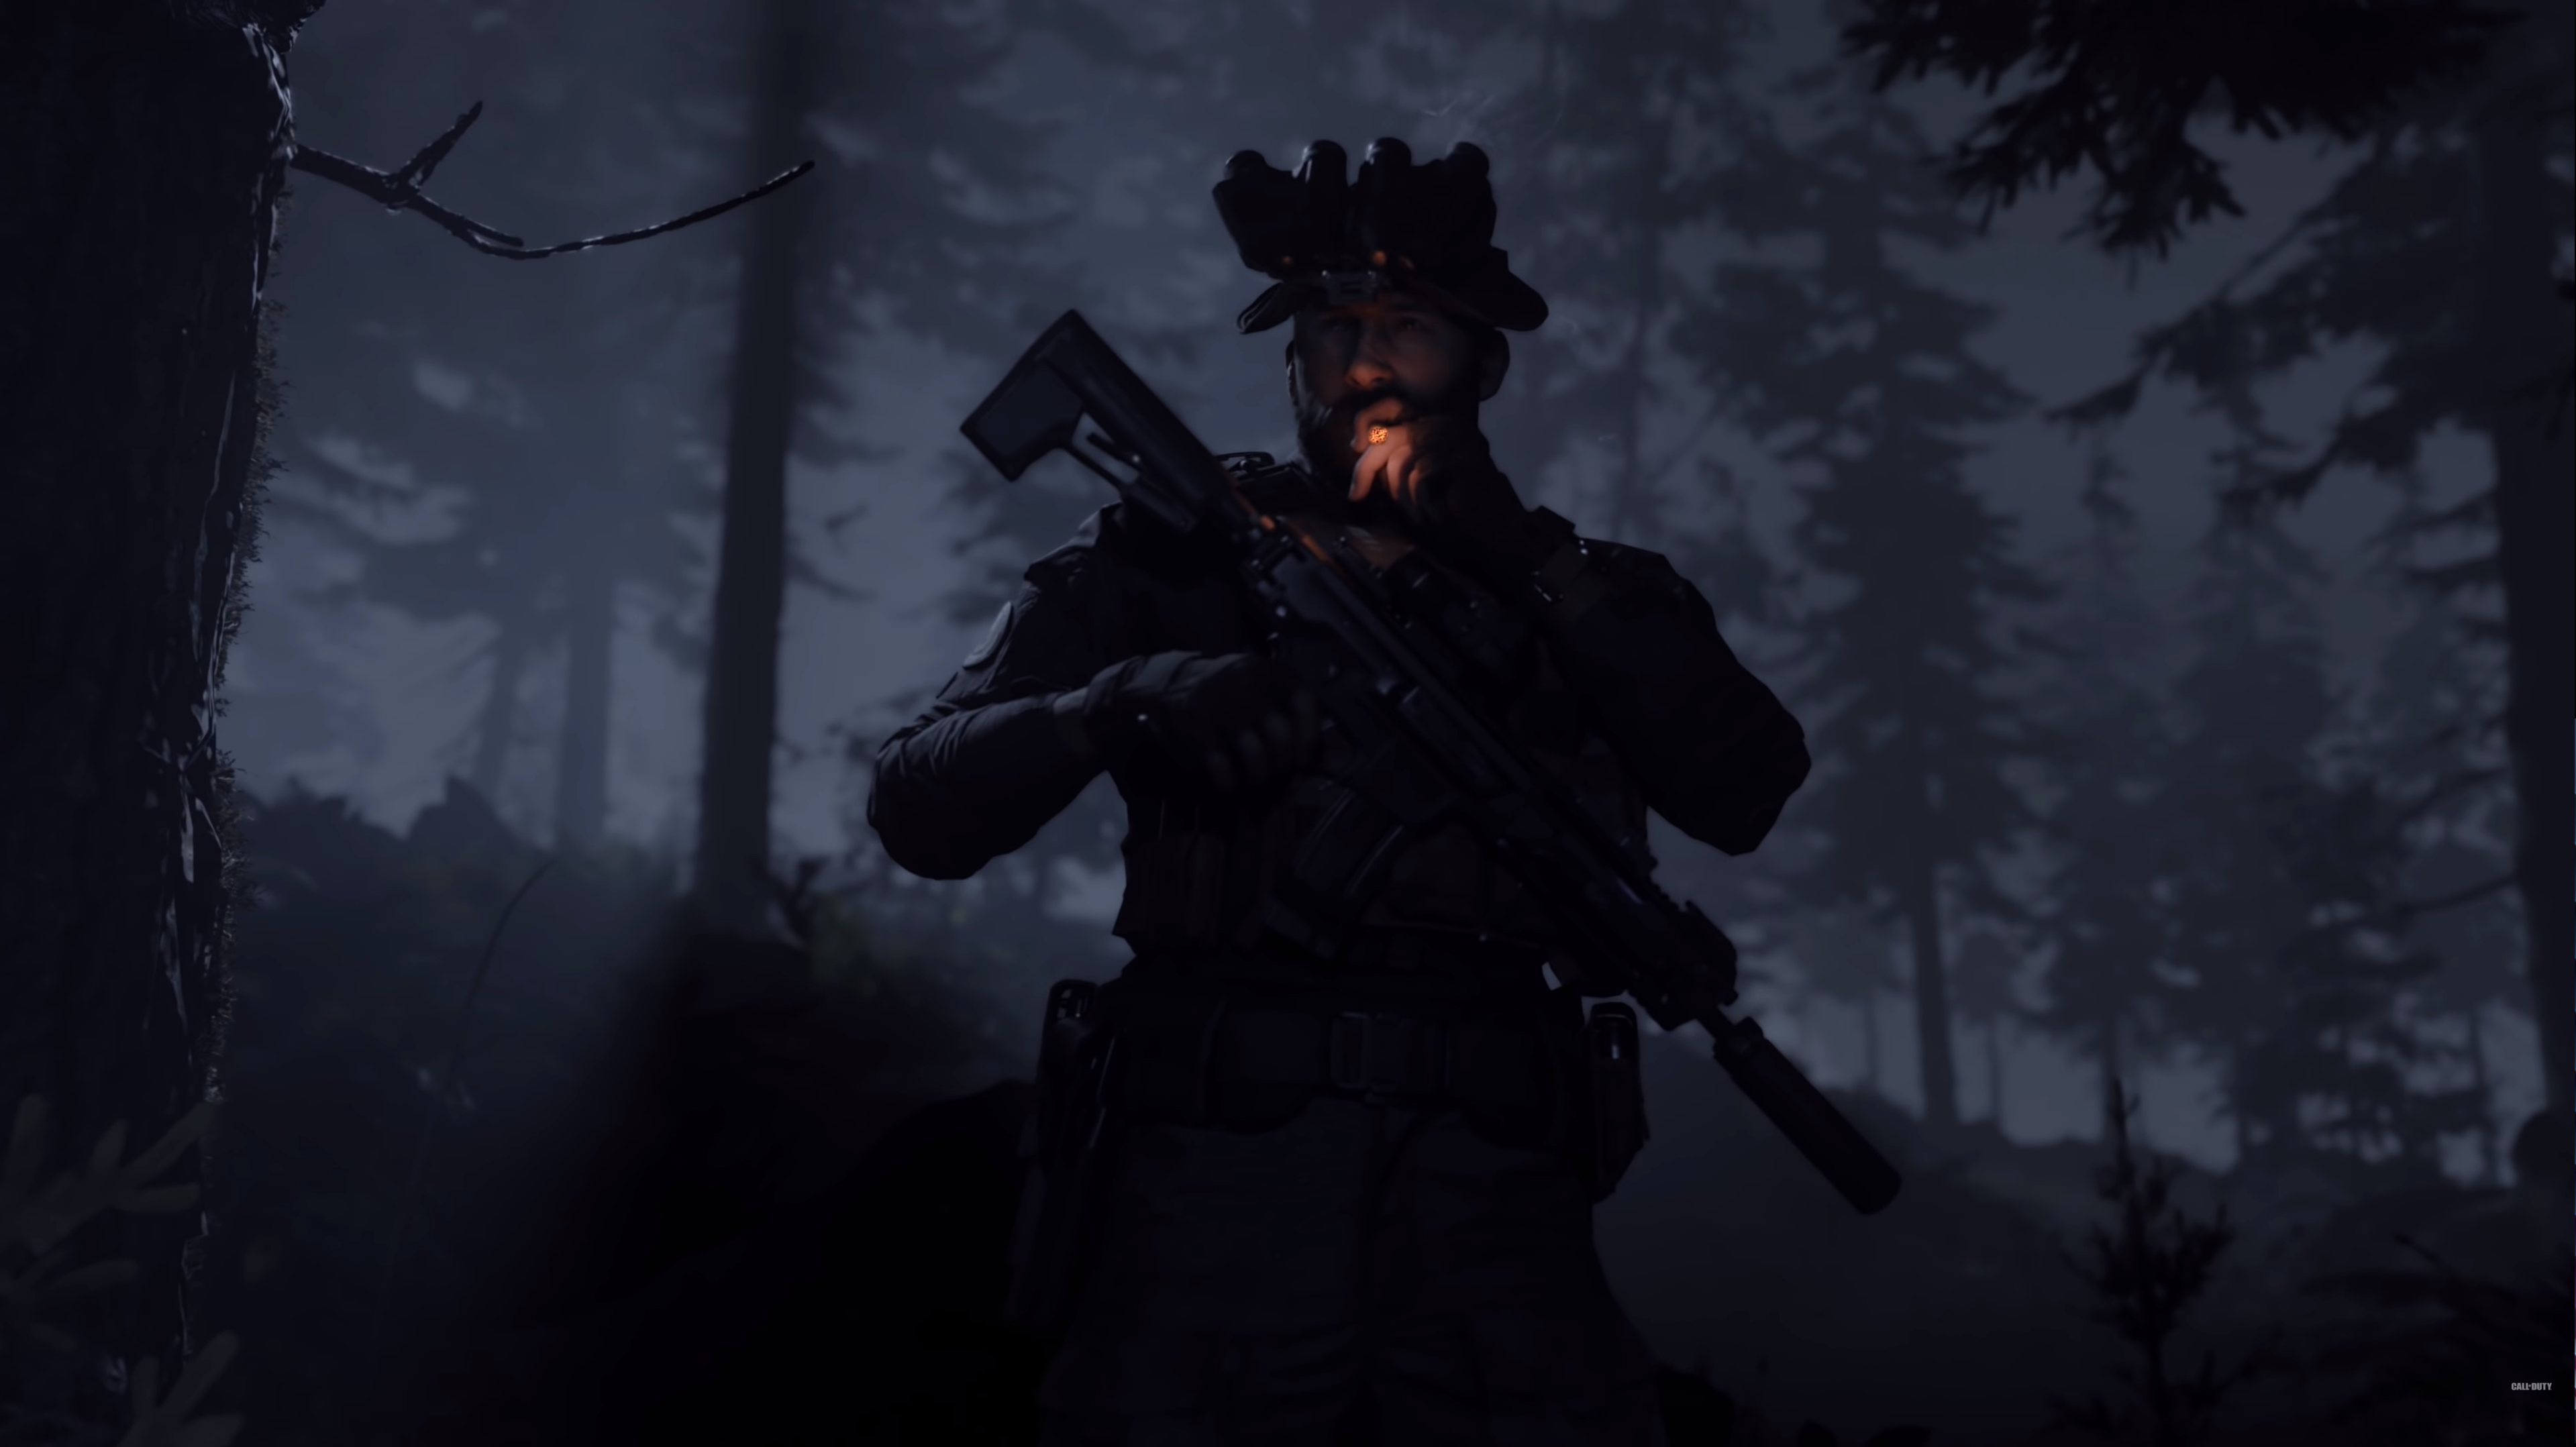 Captain Price Wallpapers Top Free Captain Price